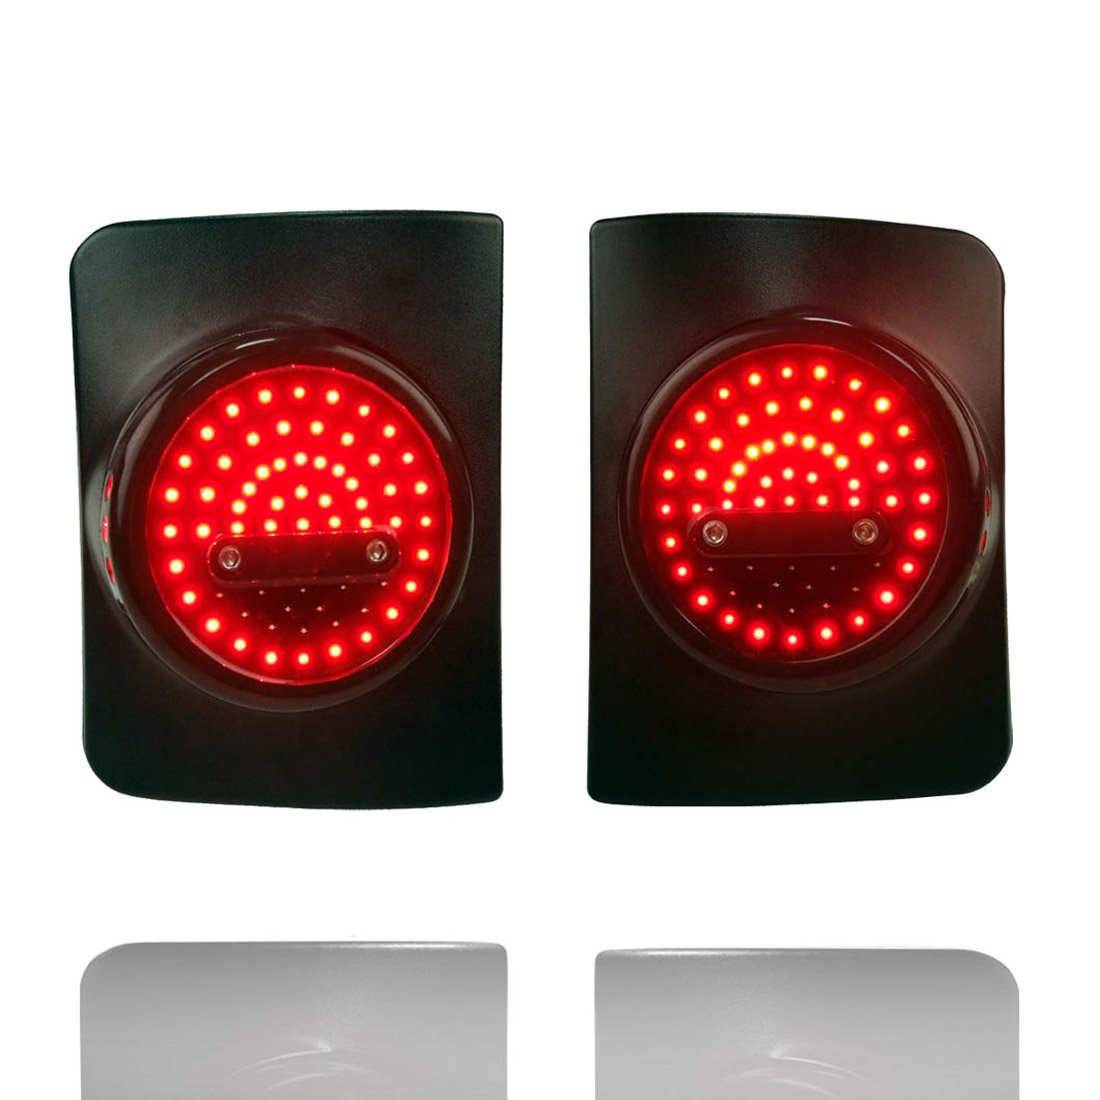 TURBO SII Black Light Guard for Rear Taillights Cover fits for 2007-2018 Jeep Wrangler JK Unlimited Pair Tail Light